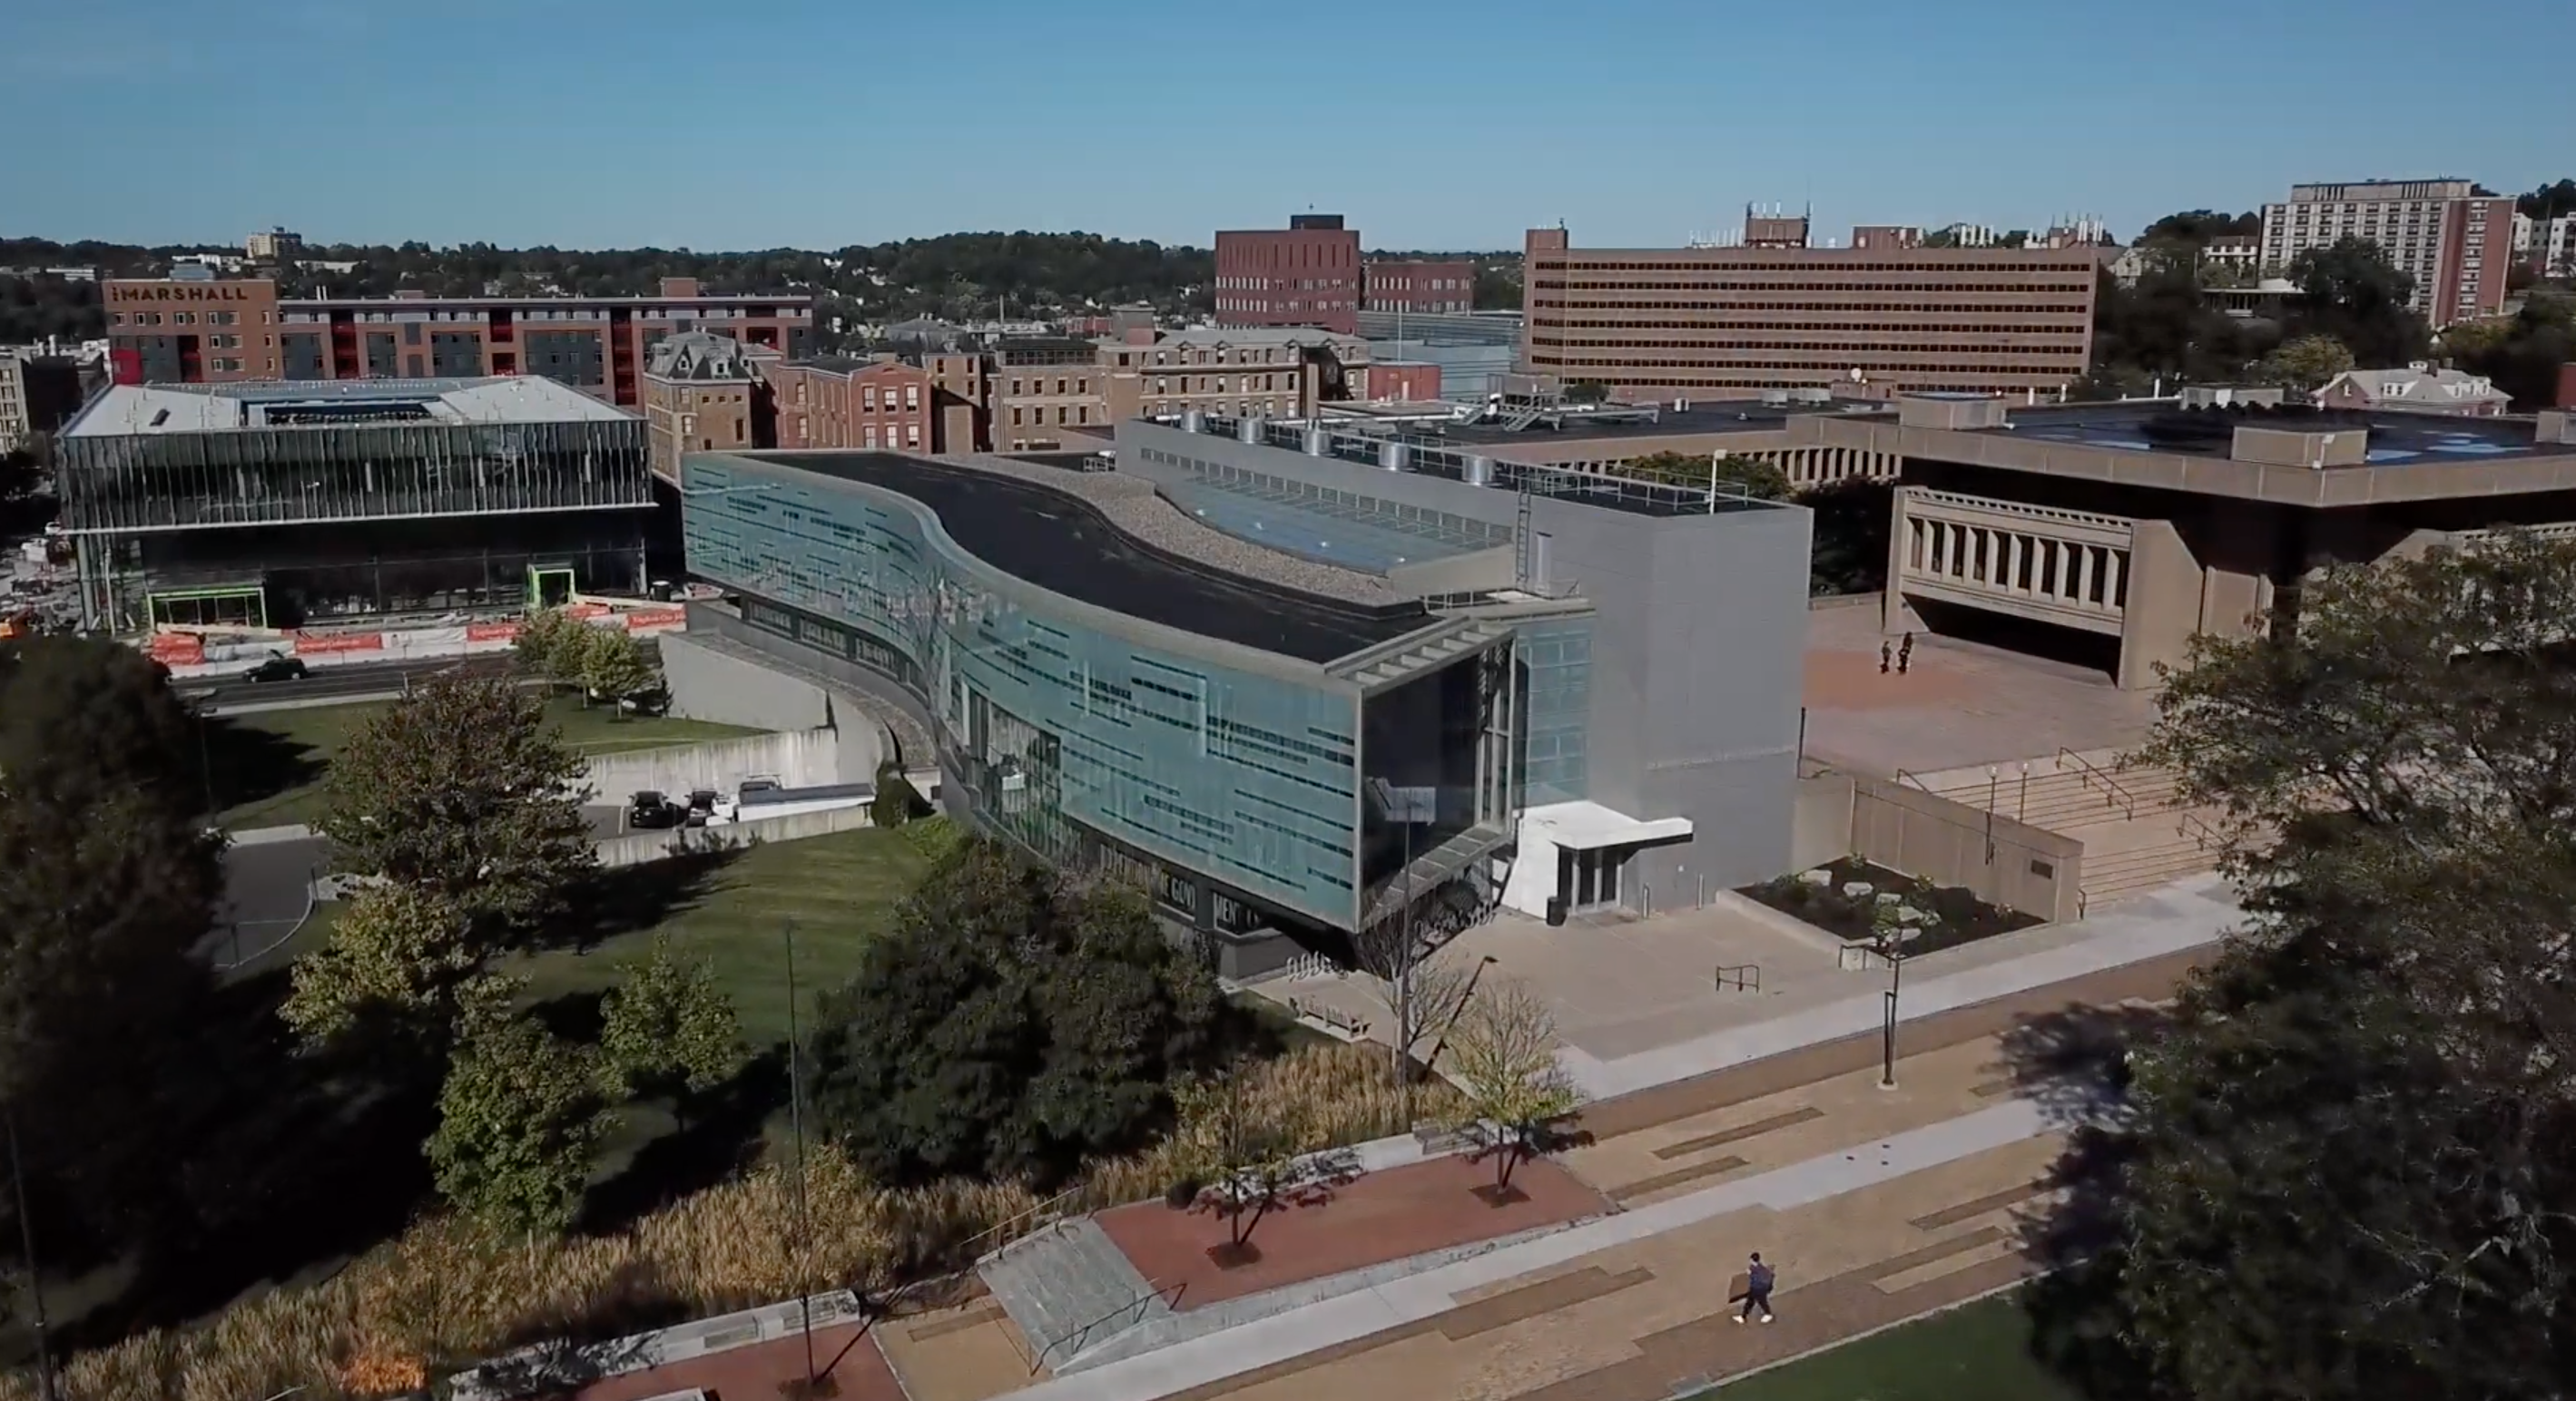 aerial view of Newhouse